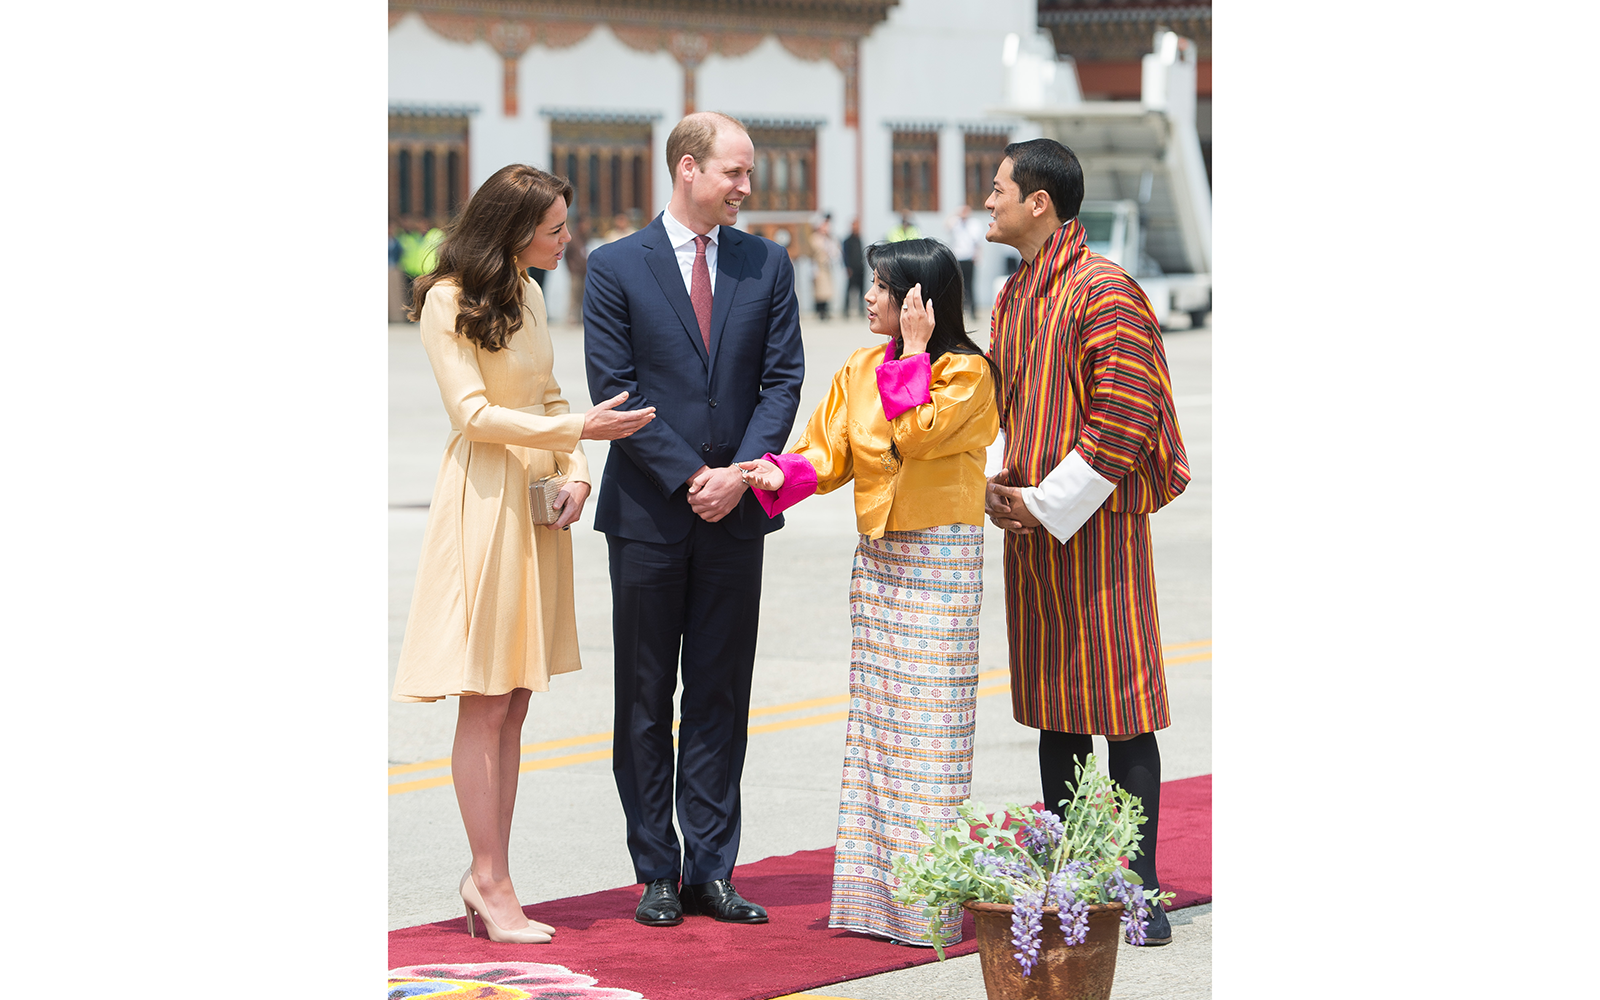 Prince William and Kate Middleton Embark on their Royal Tour of India and Bhutan: Greeting Bhutanese Royalty